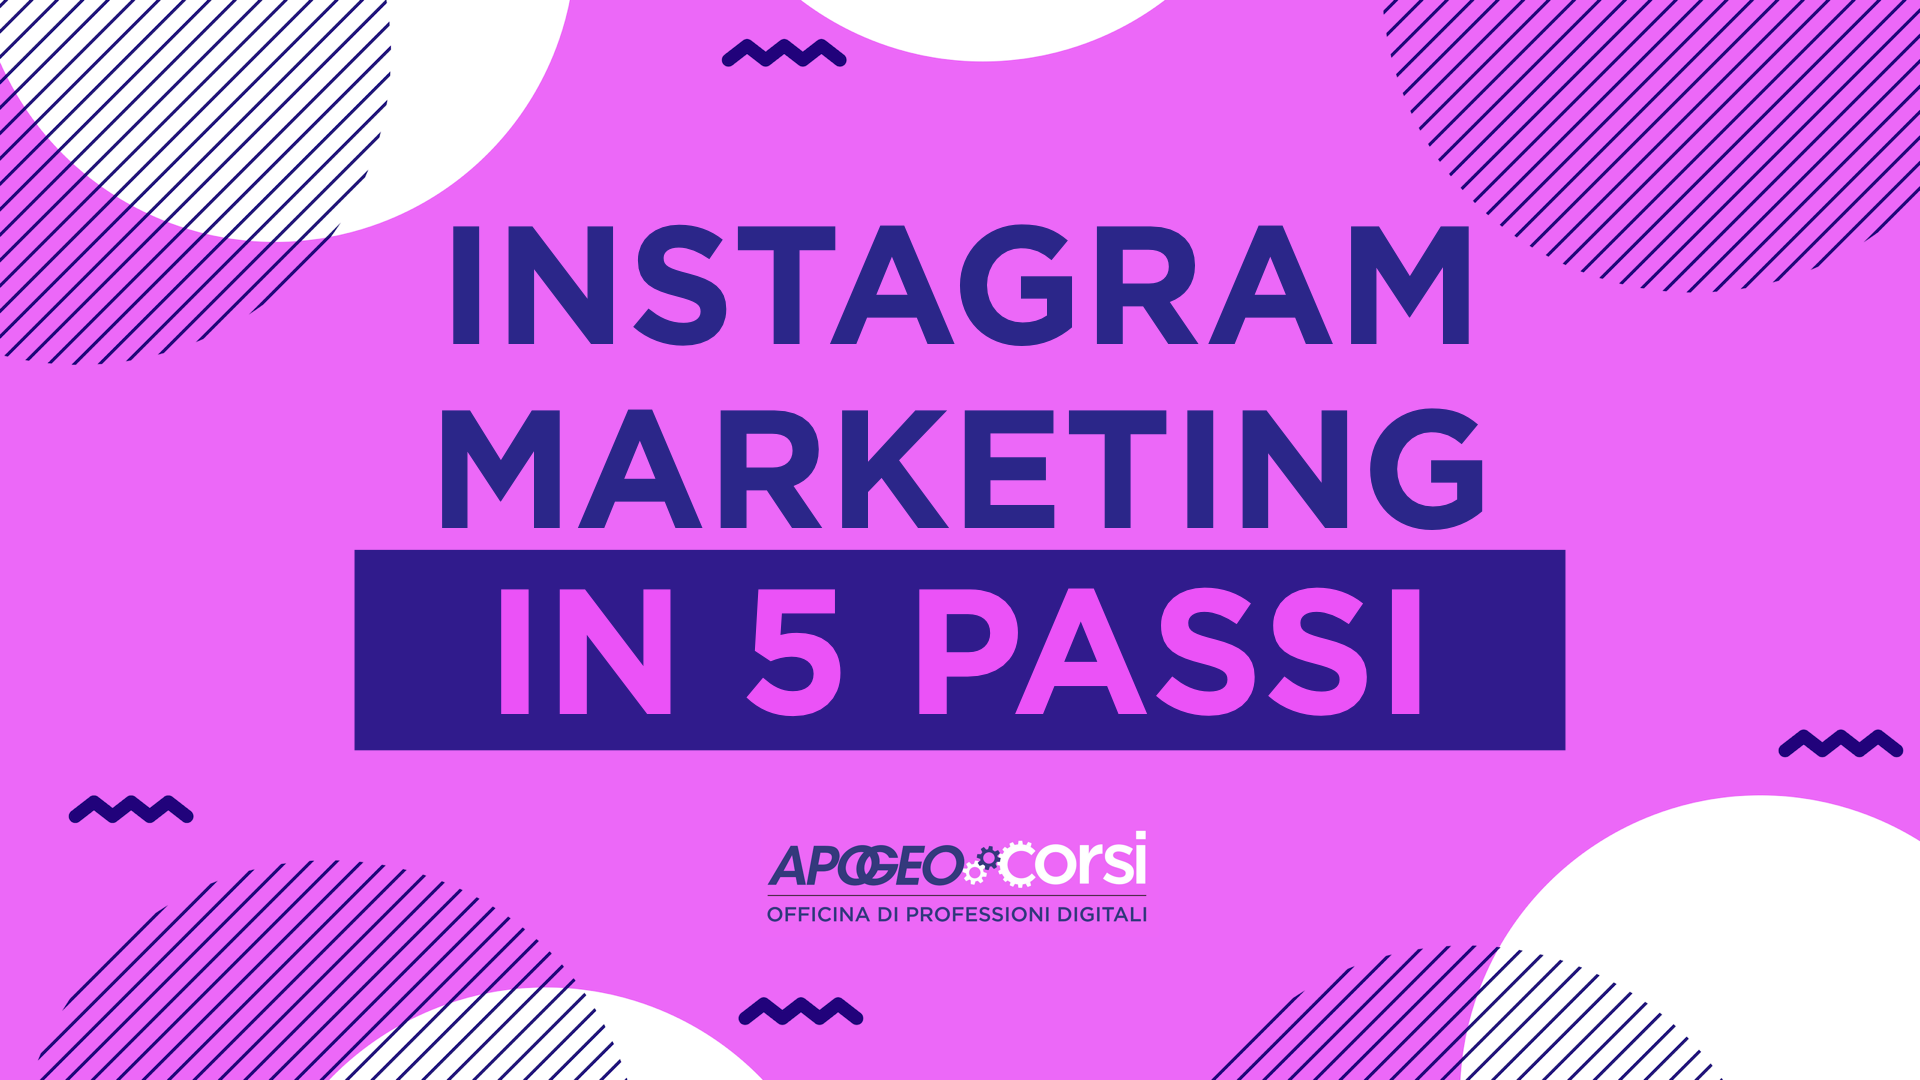 Instagram marketing in 5 passi